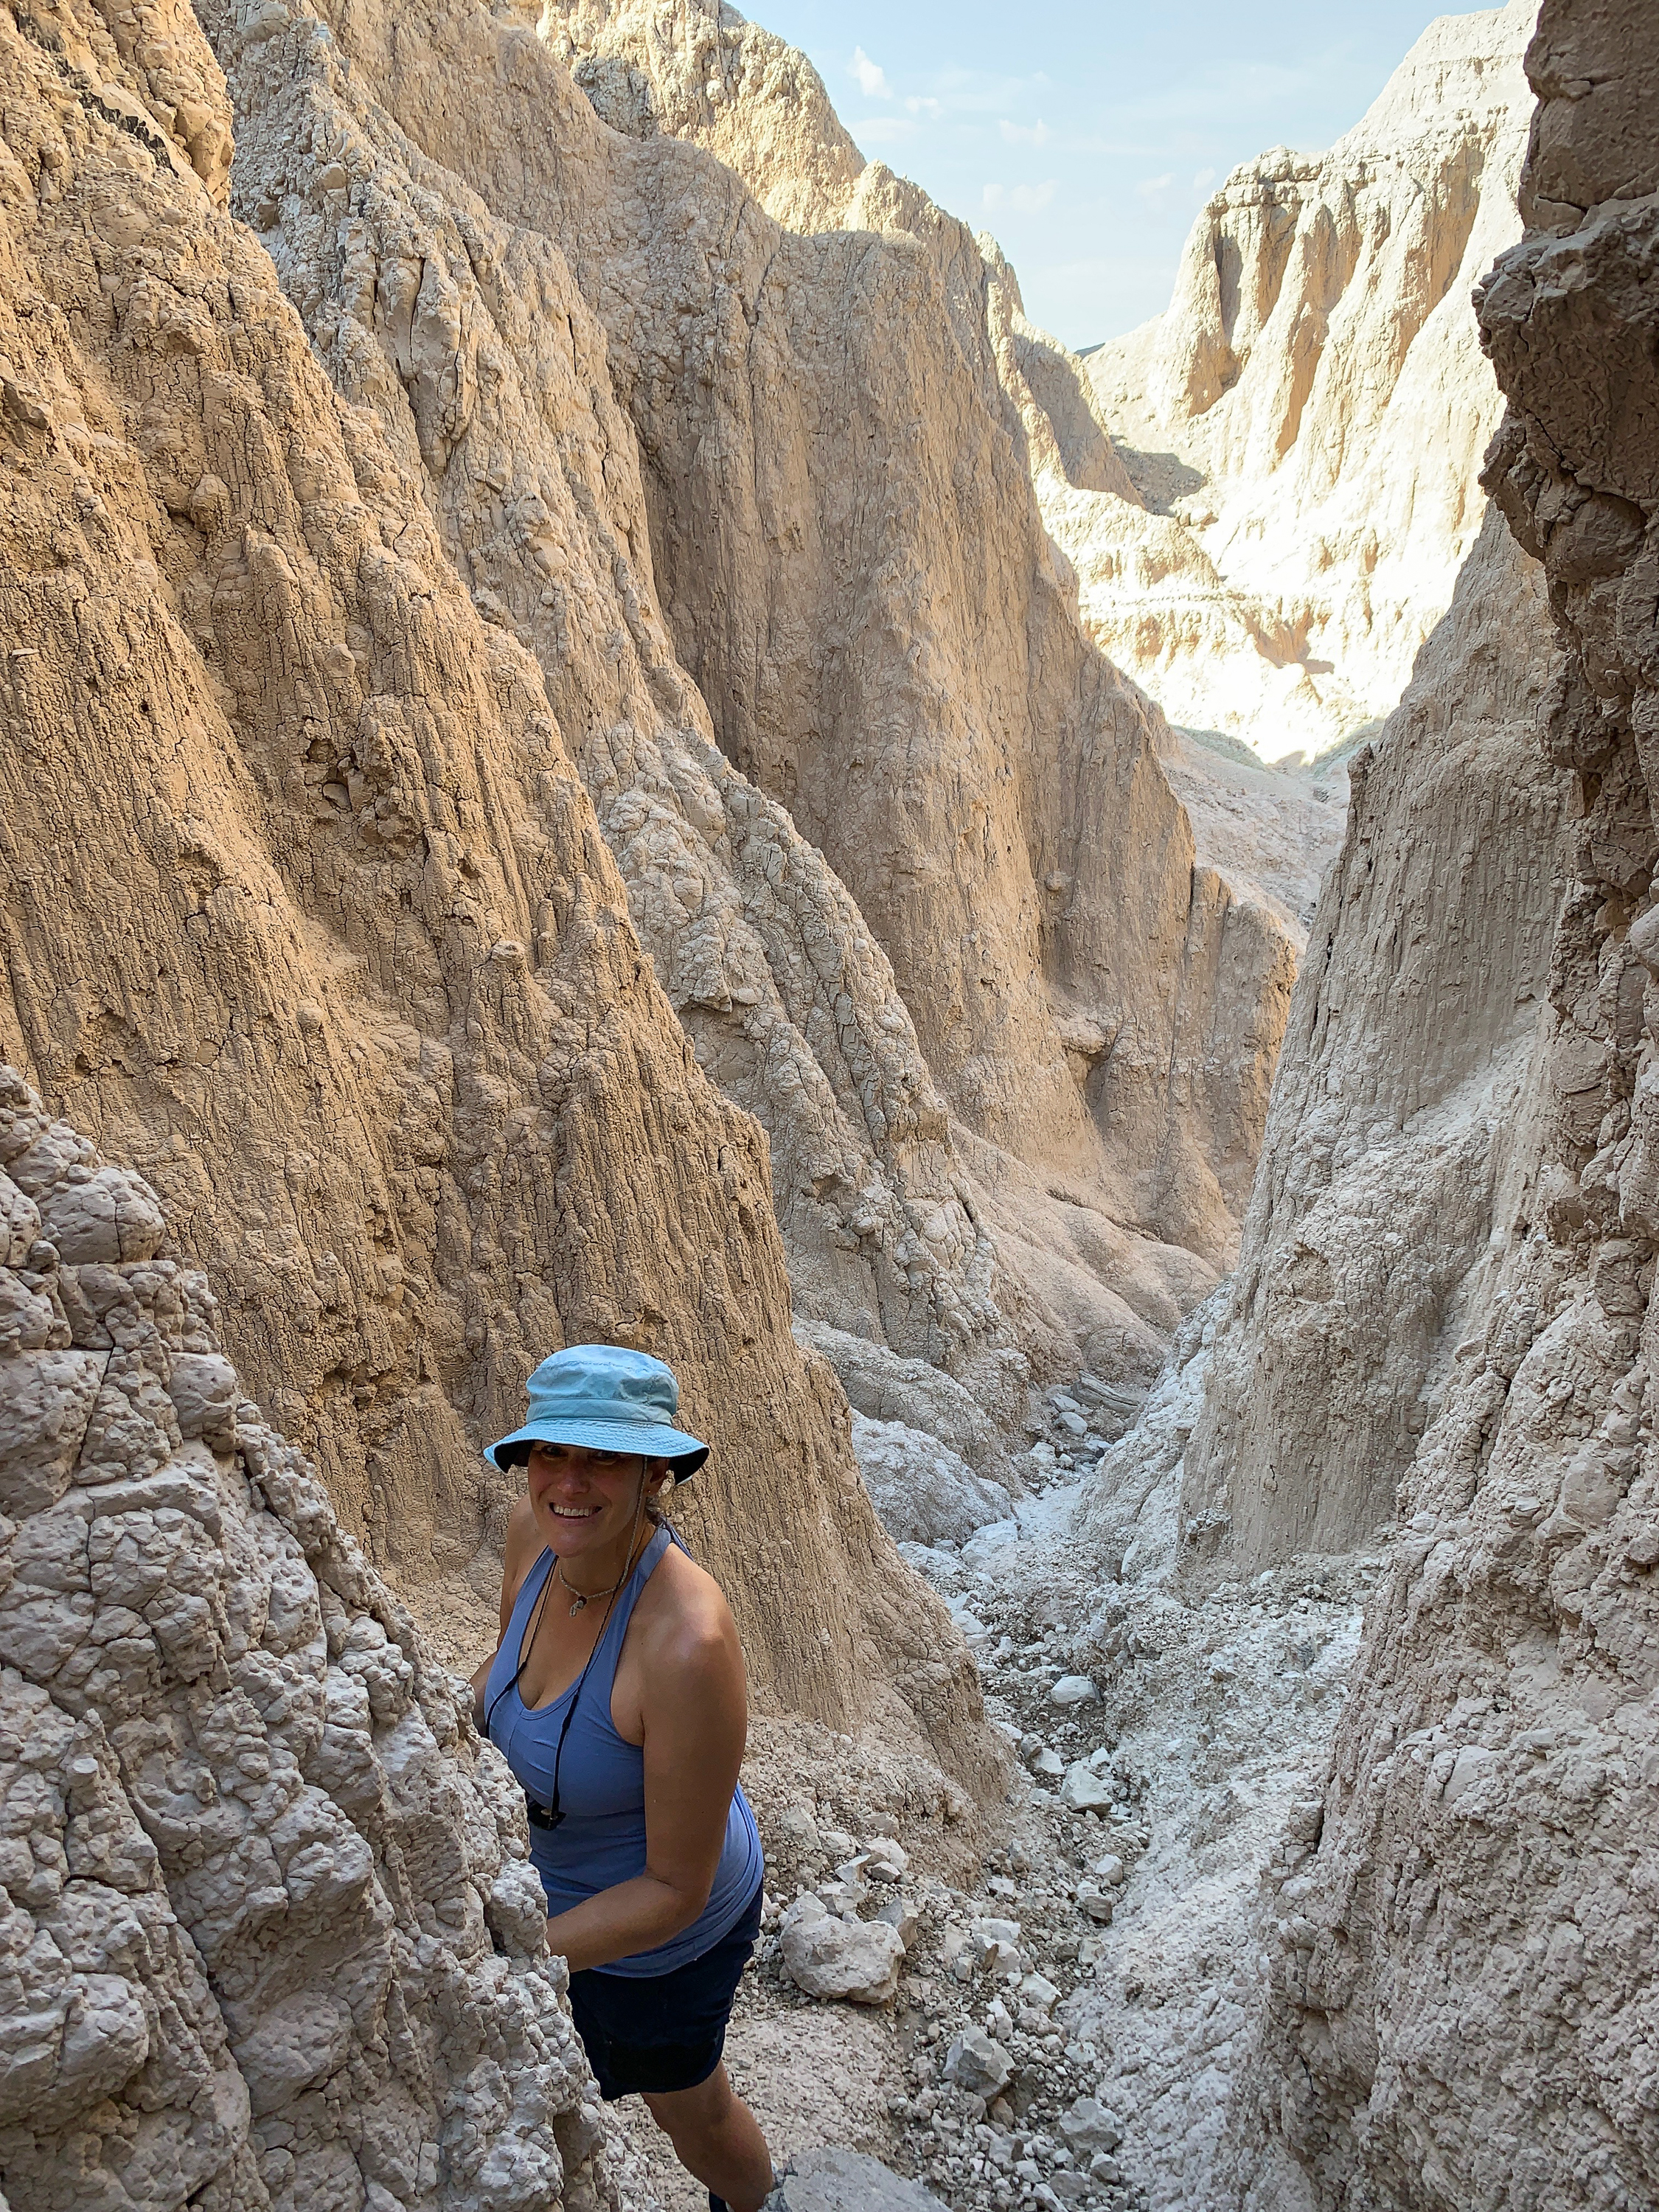 Dorinna exploring side canyons